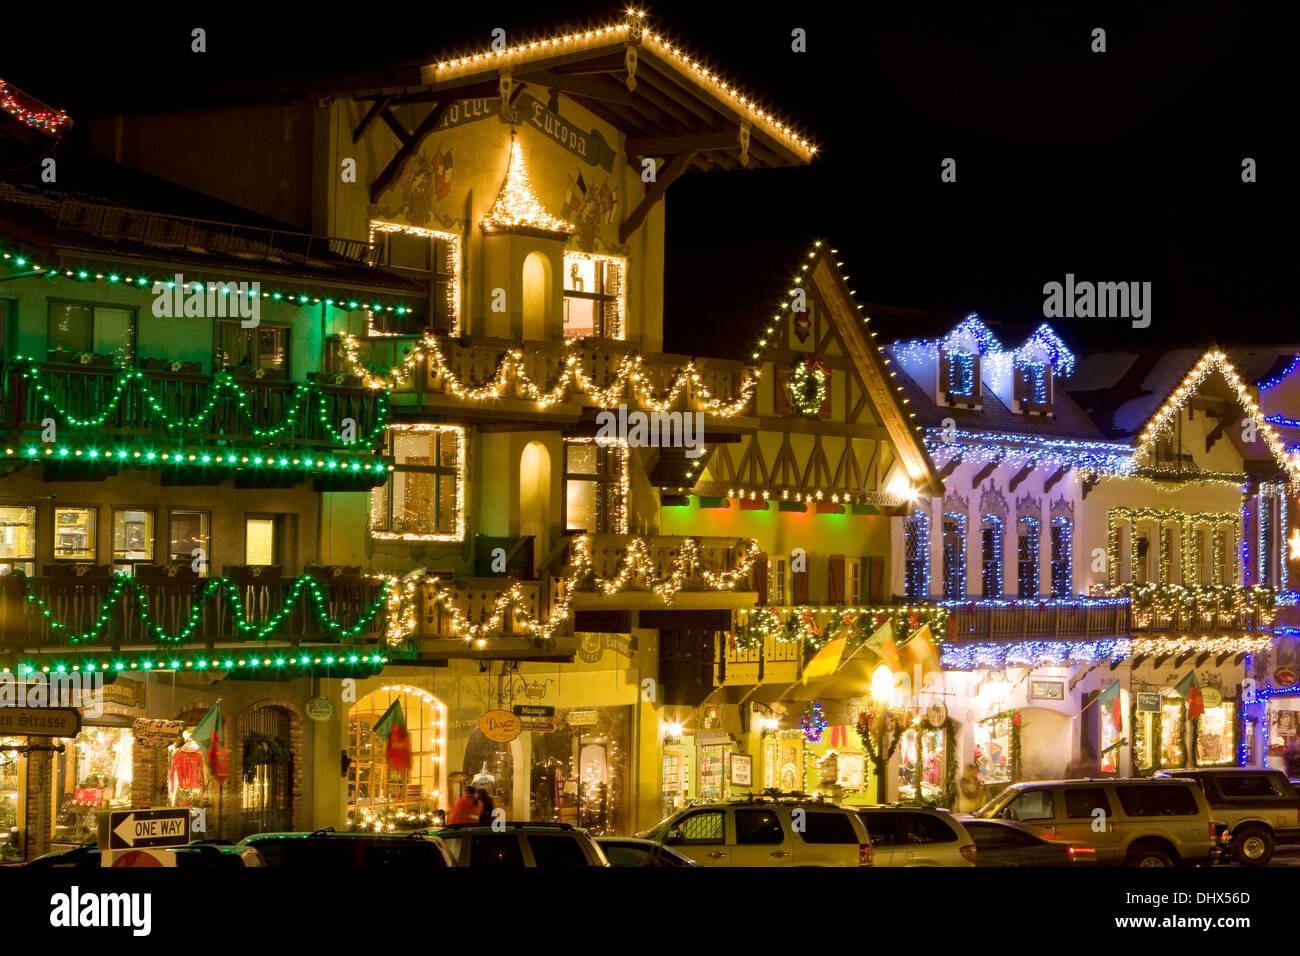 Leavenworth Christmas Lights.The Town Of Leavenworth Decorated With Christmas Lights For